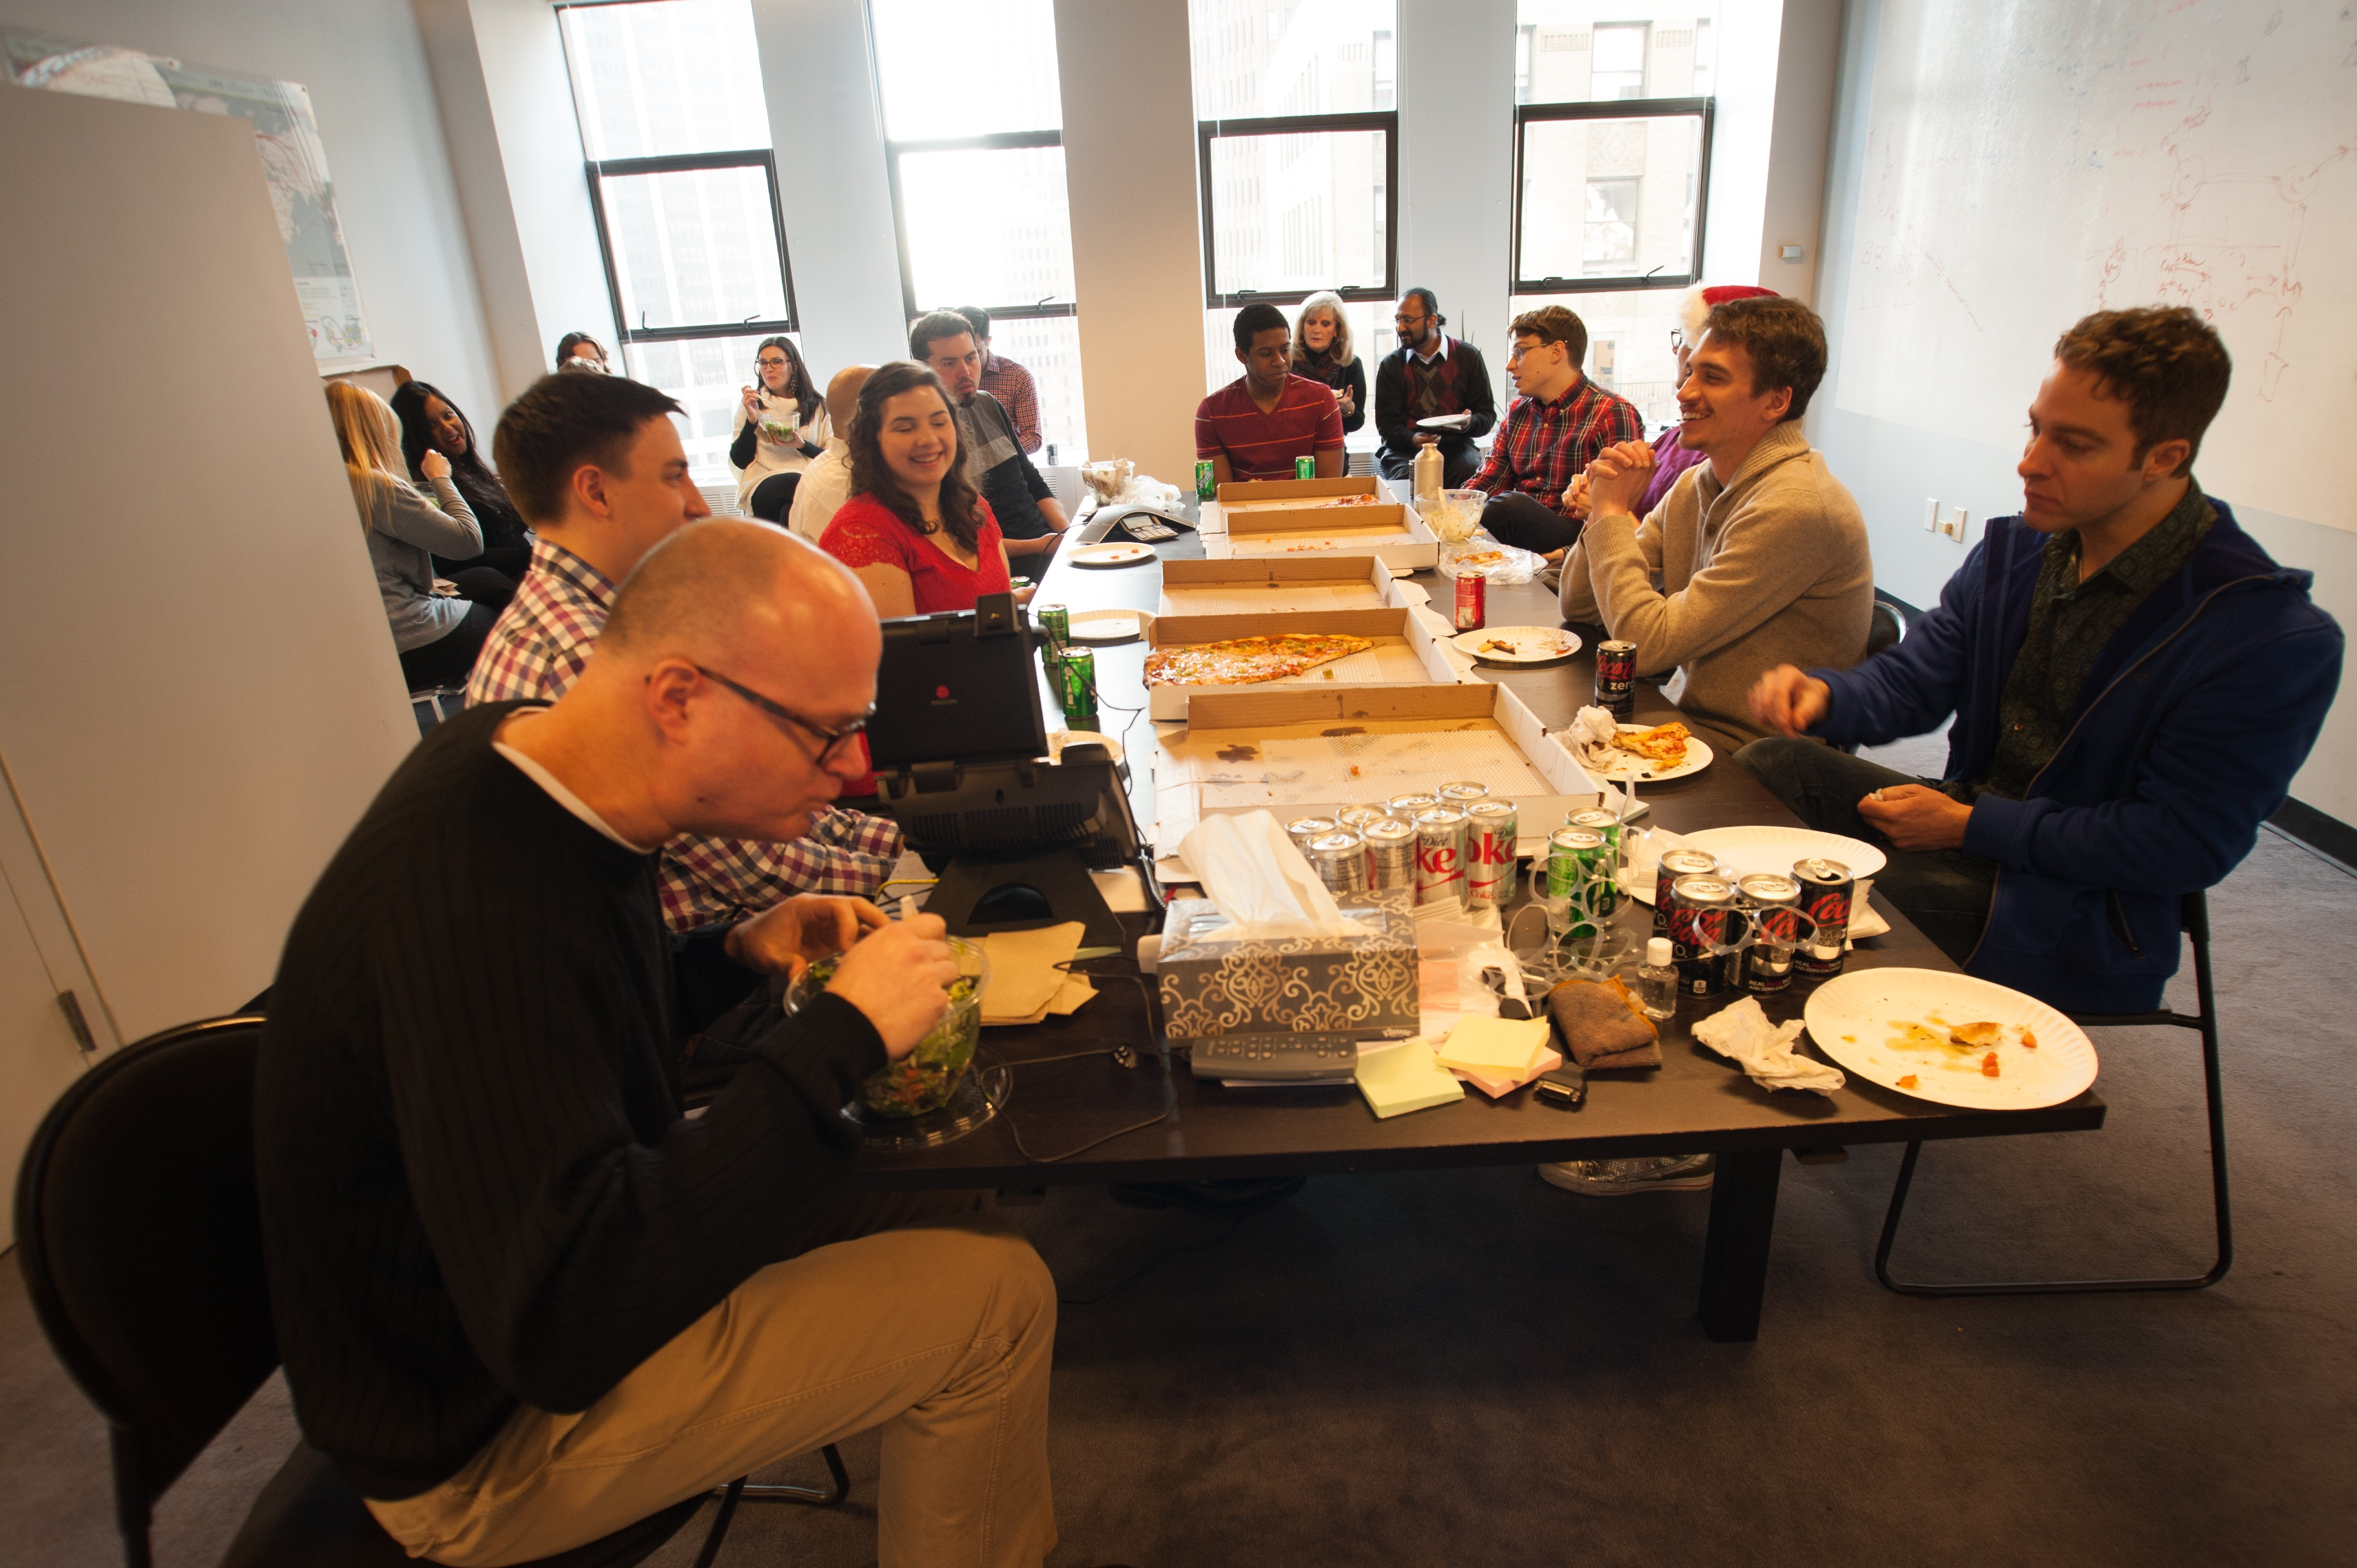 Software Team Tips to Keep the Momentum Going Through the Holiday Season